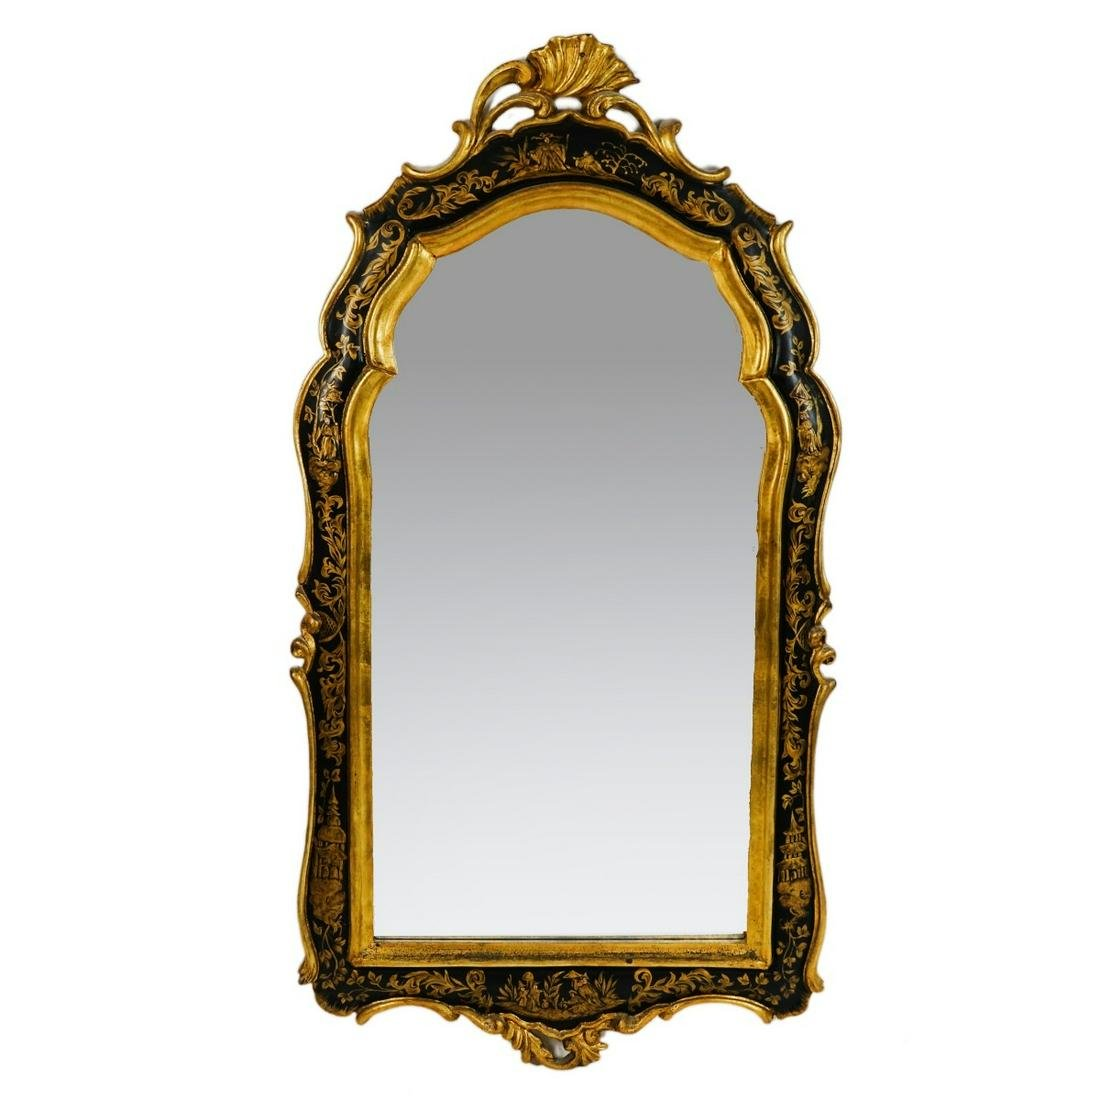 20th C. Chinoiserie Mirror